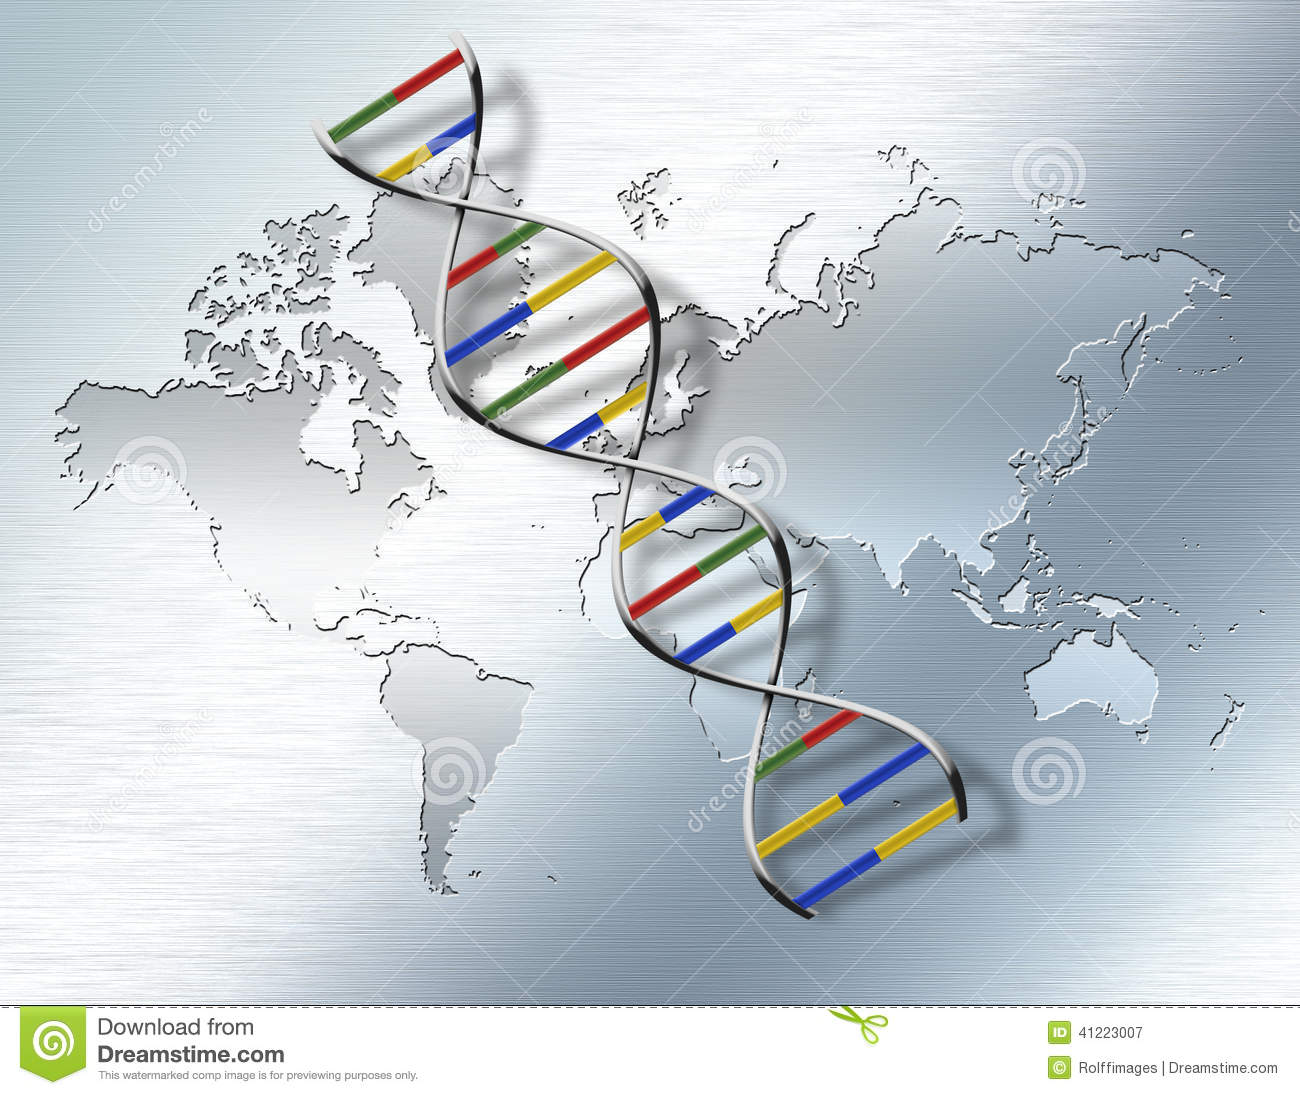 World Genetic stock illustration. Illustration of gene ... on edgar casey map of the world, genome map world, show a map of the world, elder scrolls map of the world, a physical map of the world, skin color map of the world, plate tectonics map of the world, freedom map of the world, haplogroups of the world, physical features map of the world, dna human migration, peters projection map of the world, acid rain map of the world, red map of the world, climate zone map of the world, game of thrones map of the world, emissions map of the world, dna scientists and discoveries, new yorker map of the world, ranger's apprentice map of the world,